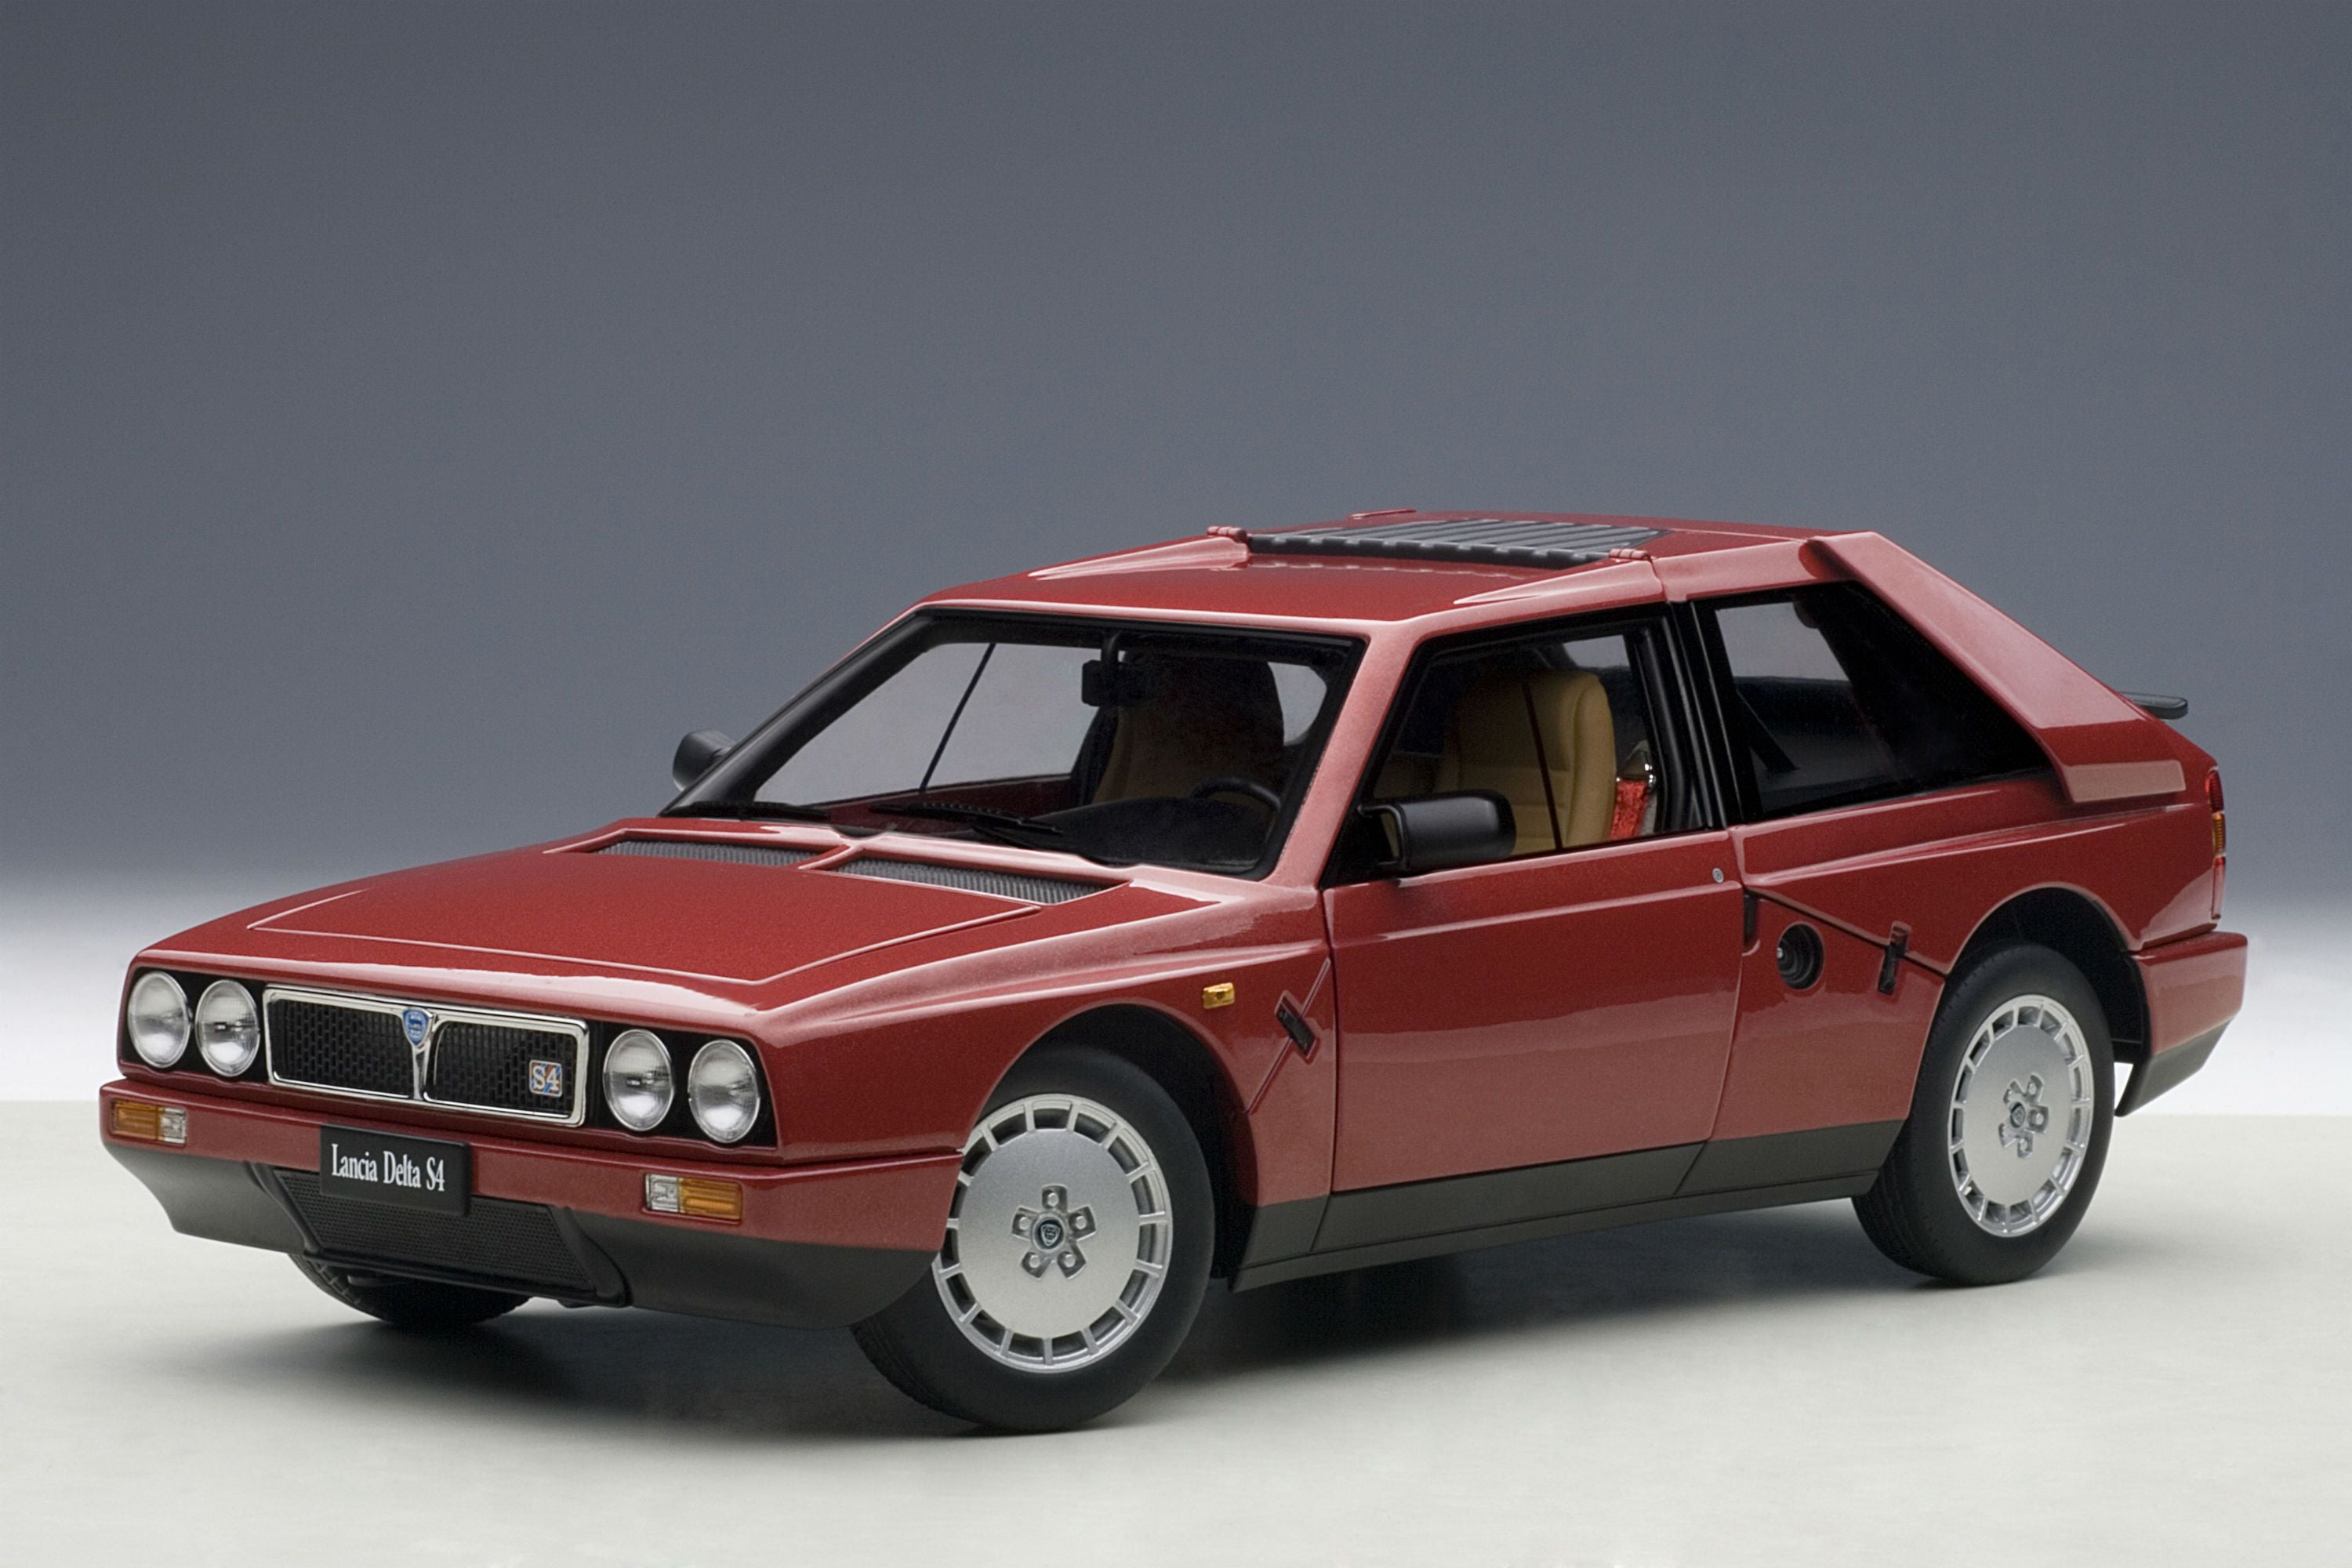 Lancia Delta S4 Stradale | 1:18 Scale Diecast Model Car by AUTOart | Front Quarter